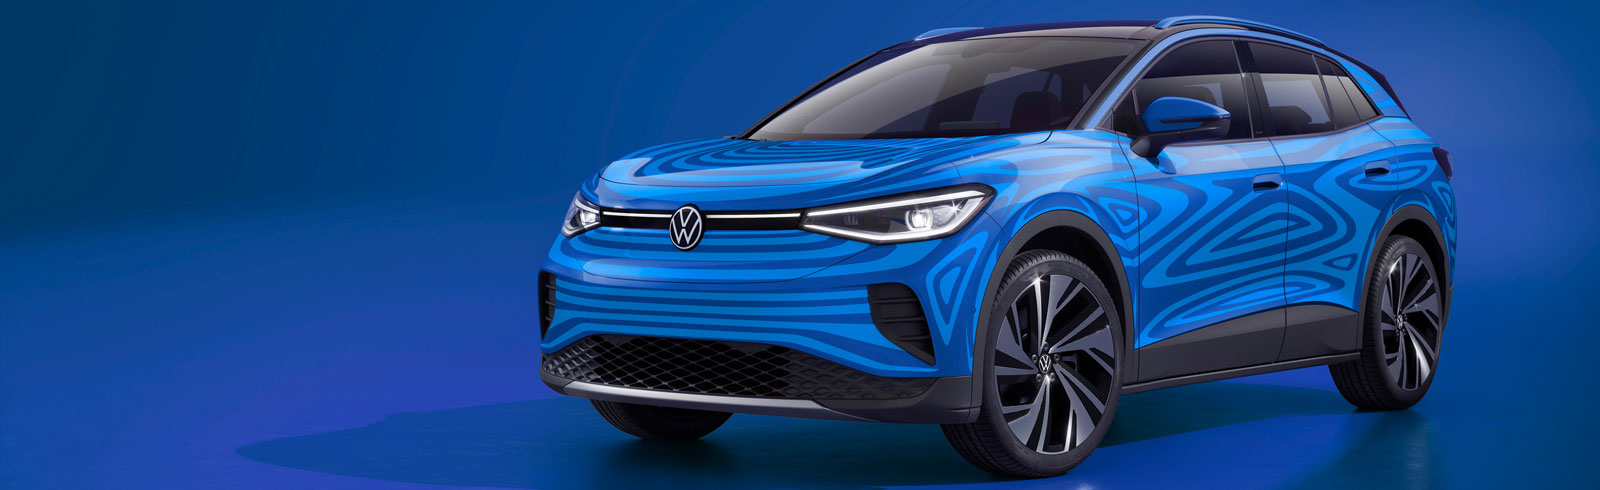 The Volkswagen ID.4 will enter production in China in October and will go on sale by the year's end